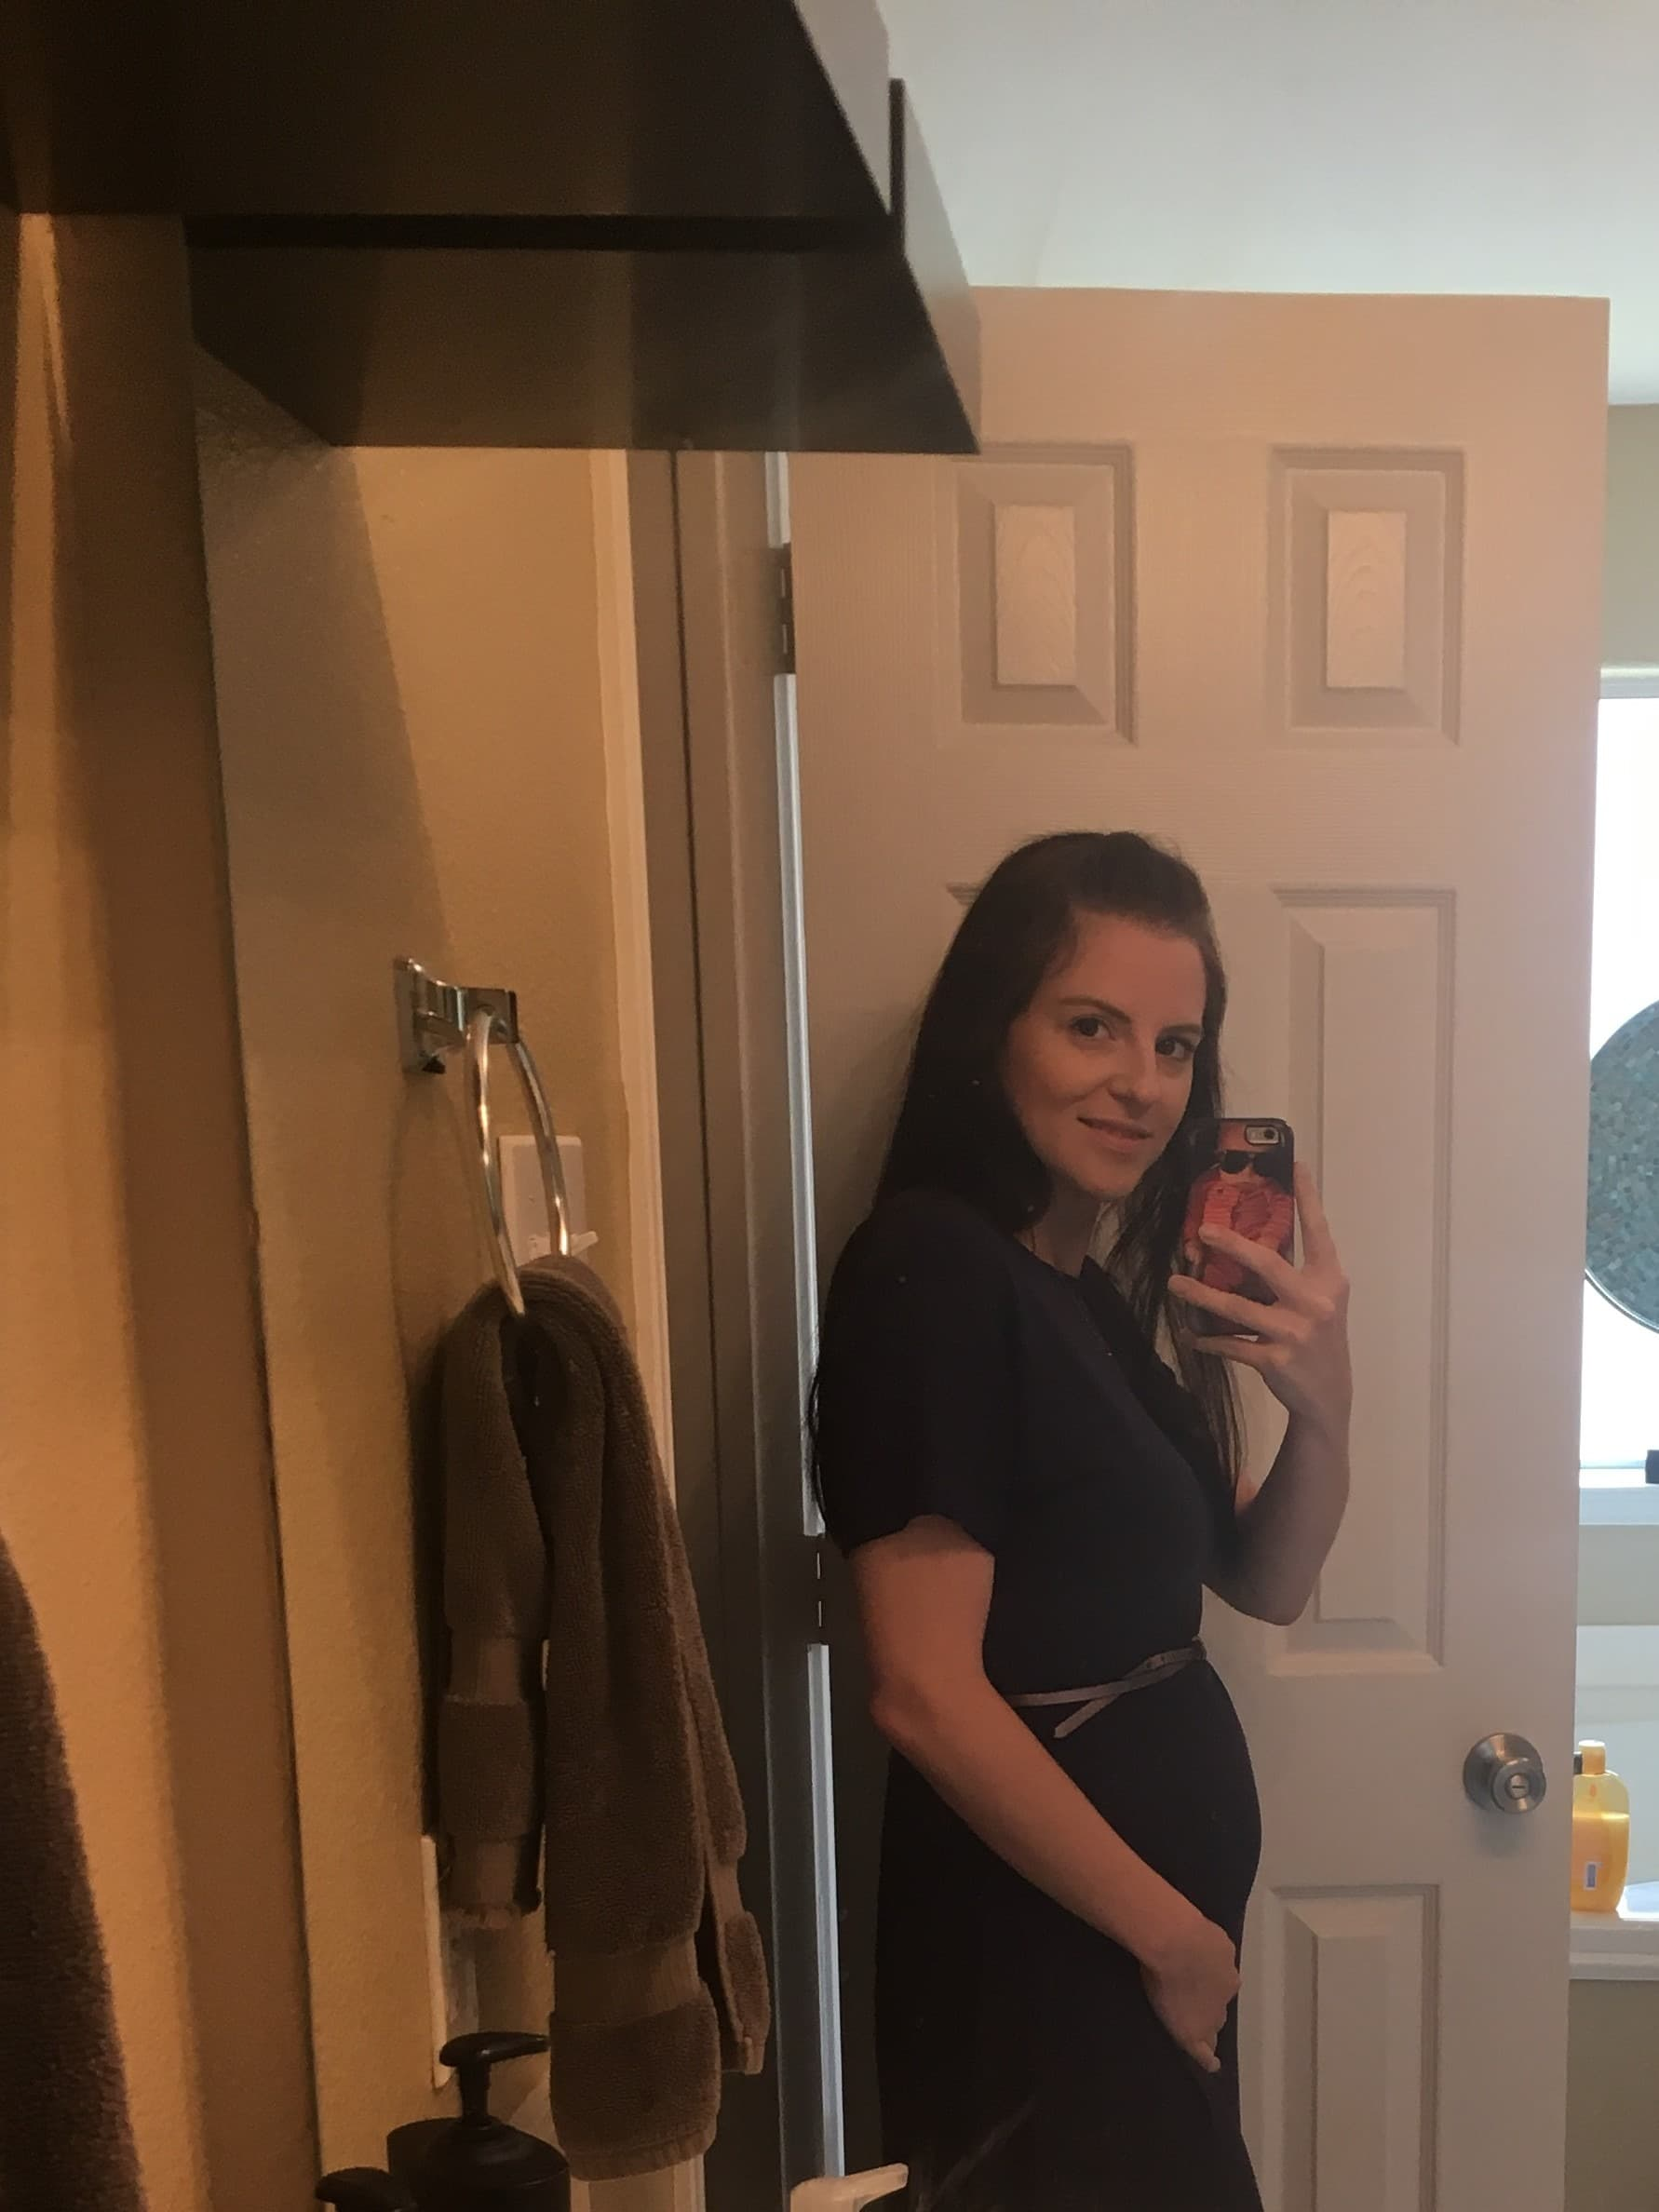 15 weeks pregnant with twins